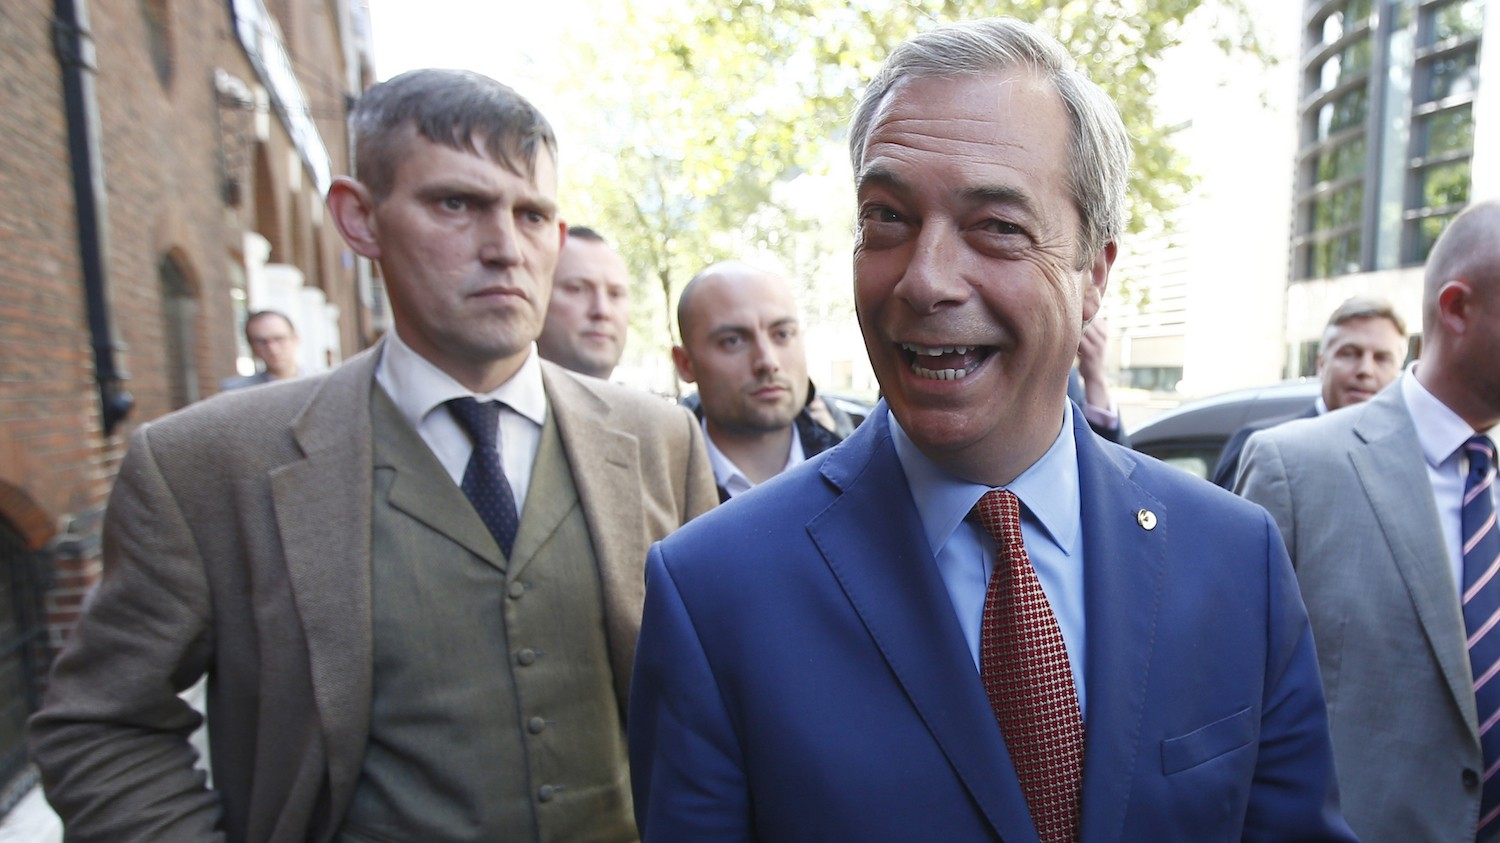 Anti-EU leader Nigel Farage quits after winning Brexit vote